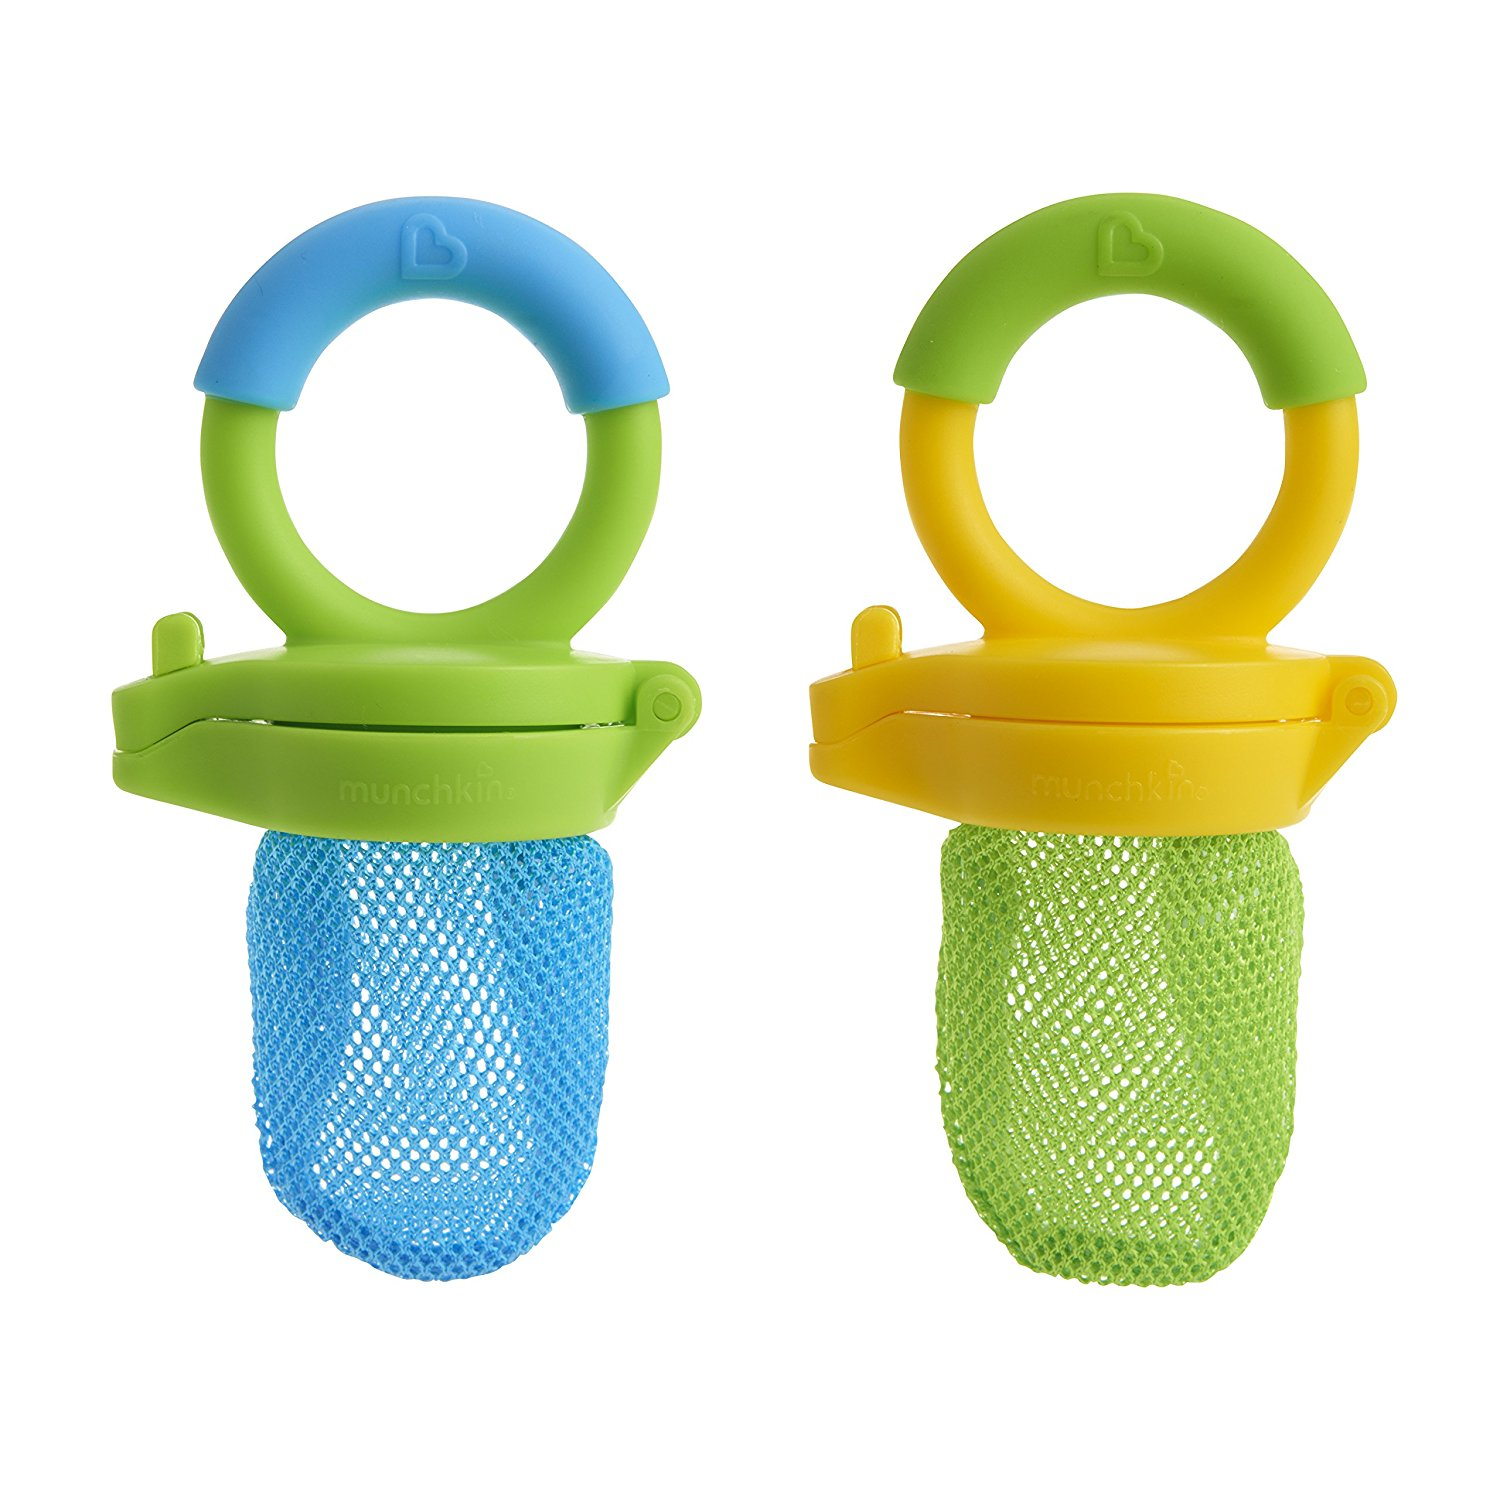 Fresh Food Feeder, 2 Pack, Blue/Green, Discontinued Fresh Waterproof Milanese Size Count Fitbit Multisize Converter Pack Racing 10 II Small Turbo Mesh.., By Munchkin